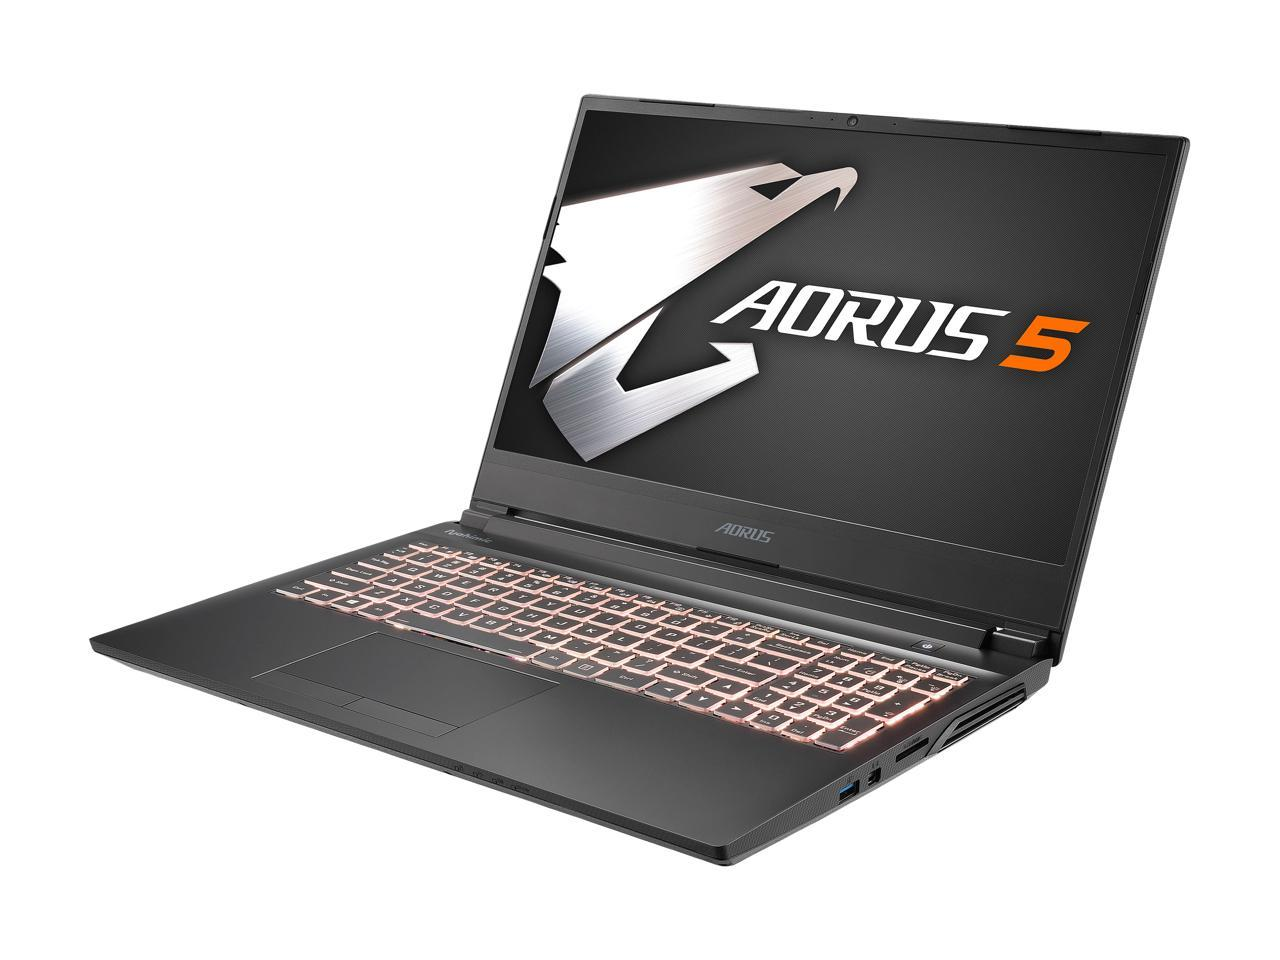 Gigabyte Aorus 5: 15.6'' 144 Hz IPS FHD, i7-10750H, 16GB DDR4, RTX 2060, 512GB PCIe SSD, Win10H + Intel Software Bundle @ $999 AR + F/S